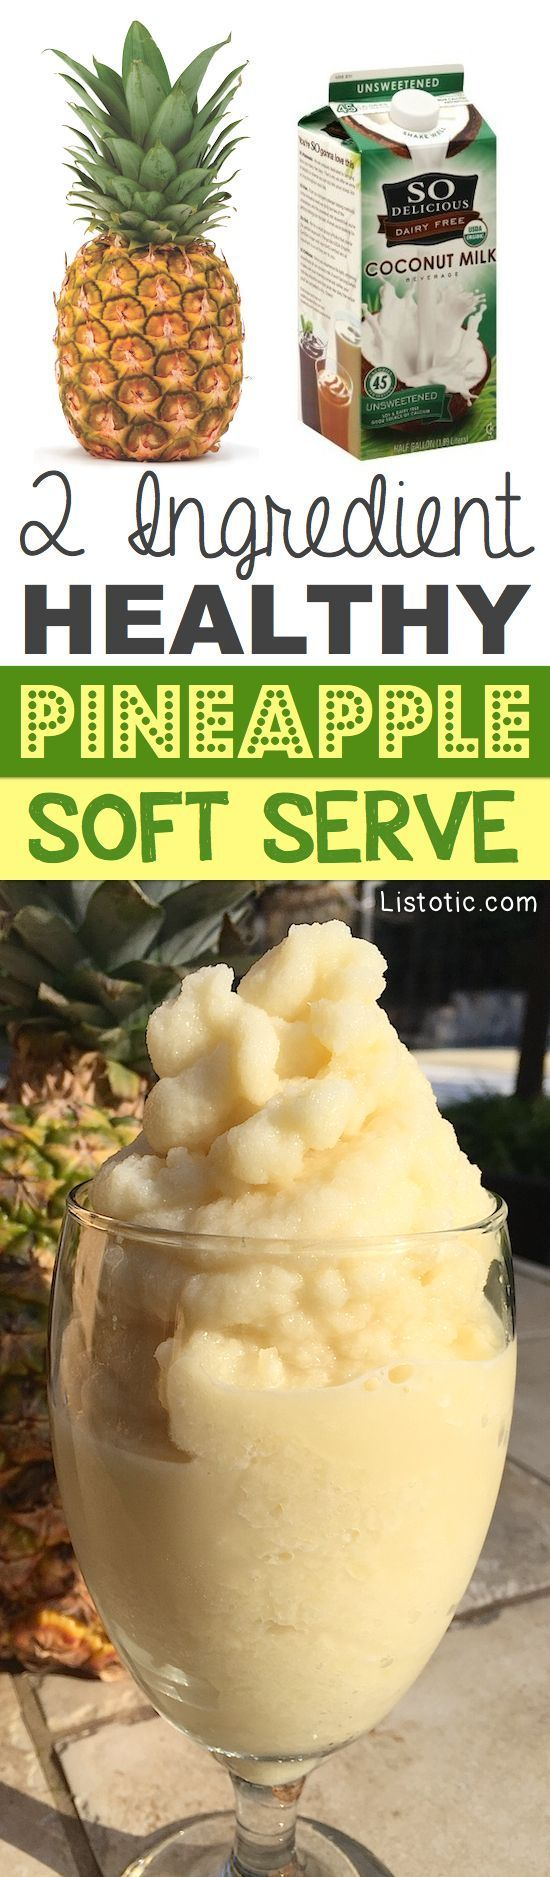 """2 Ingredient Healthy Pineapple """"Soft Serve"""" 2 Ingredient, easy, dairy-free, healthy pineapple soft serve like dessert! This healthy snack recipe is similar to a smoothie but thicker and creamier. It's the perfect guilt-free treat!"""